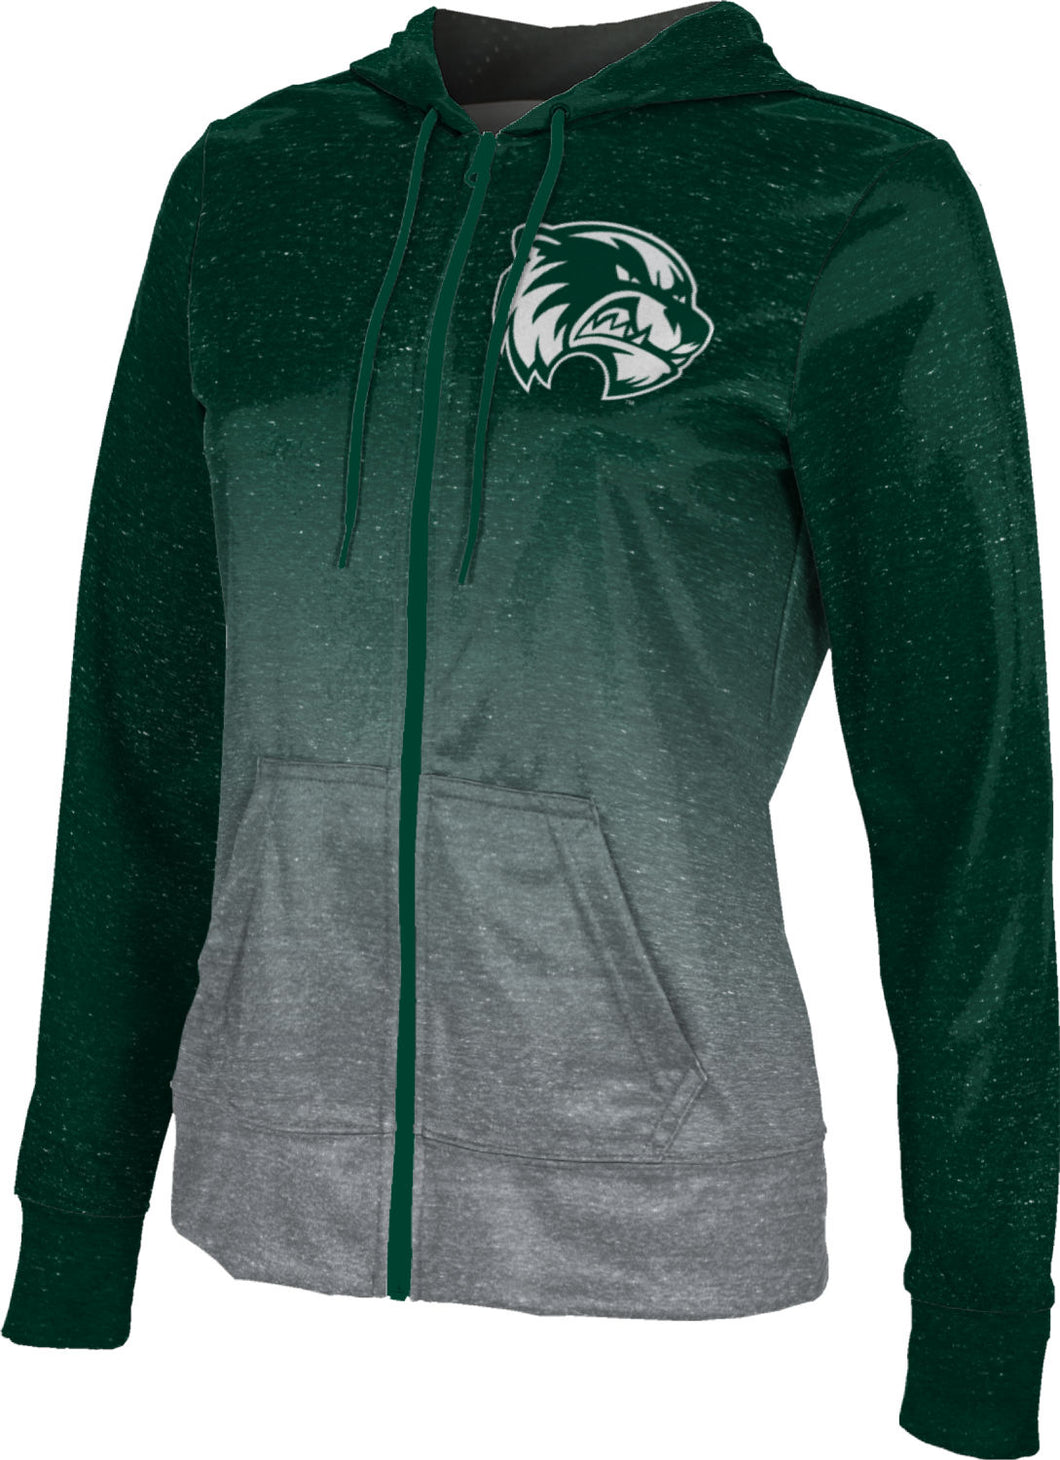 Utah Valley University: Women's Full Zip Hoodie - Gradient